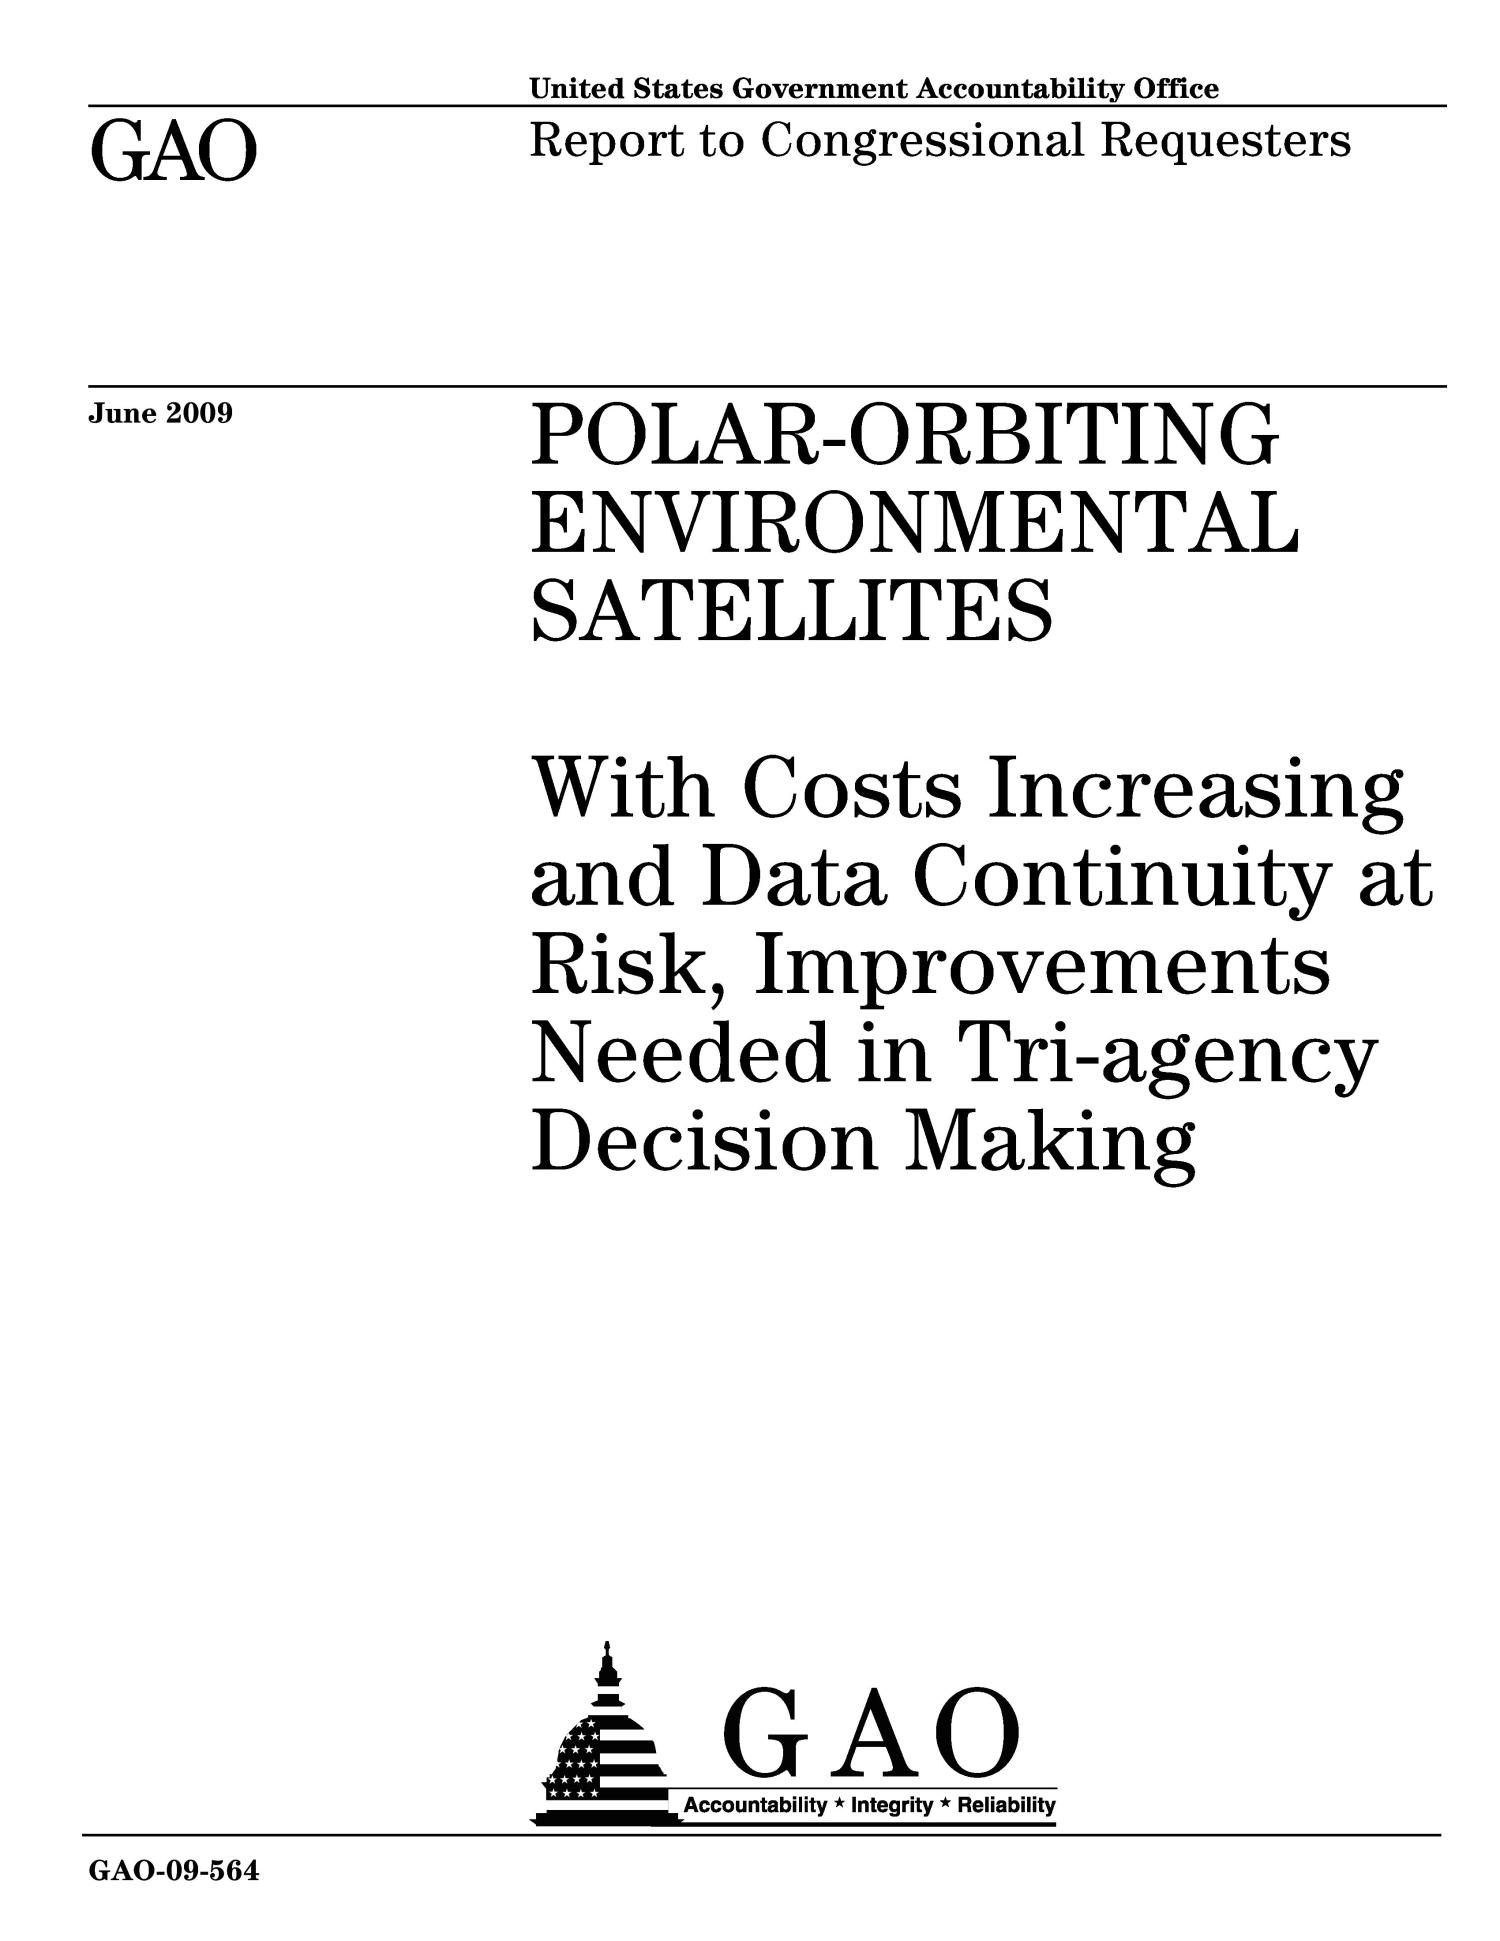 Polar-Orbiting Environmental Satellites: With Costs Increasing and Data Continuity at Risk, Improvements Needed in Tri-agency Decision Making                                                                                                      [Sequence #]: 1 of 52